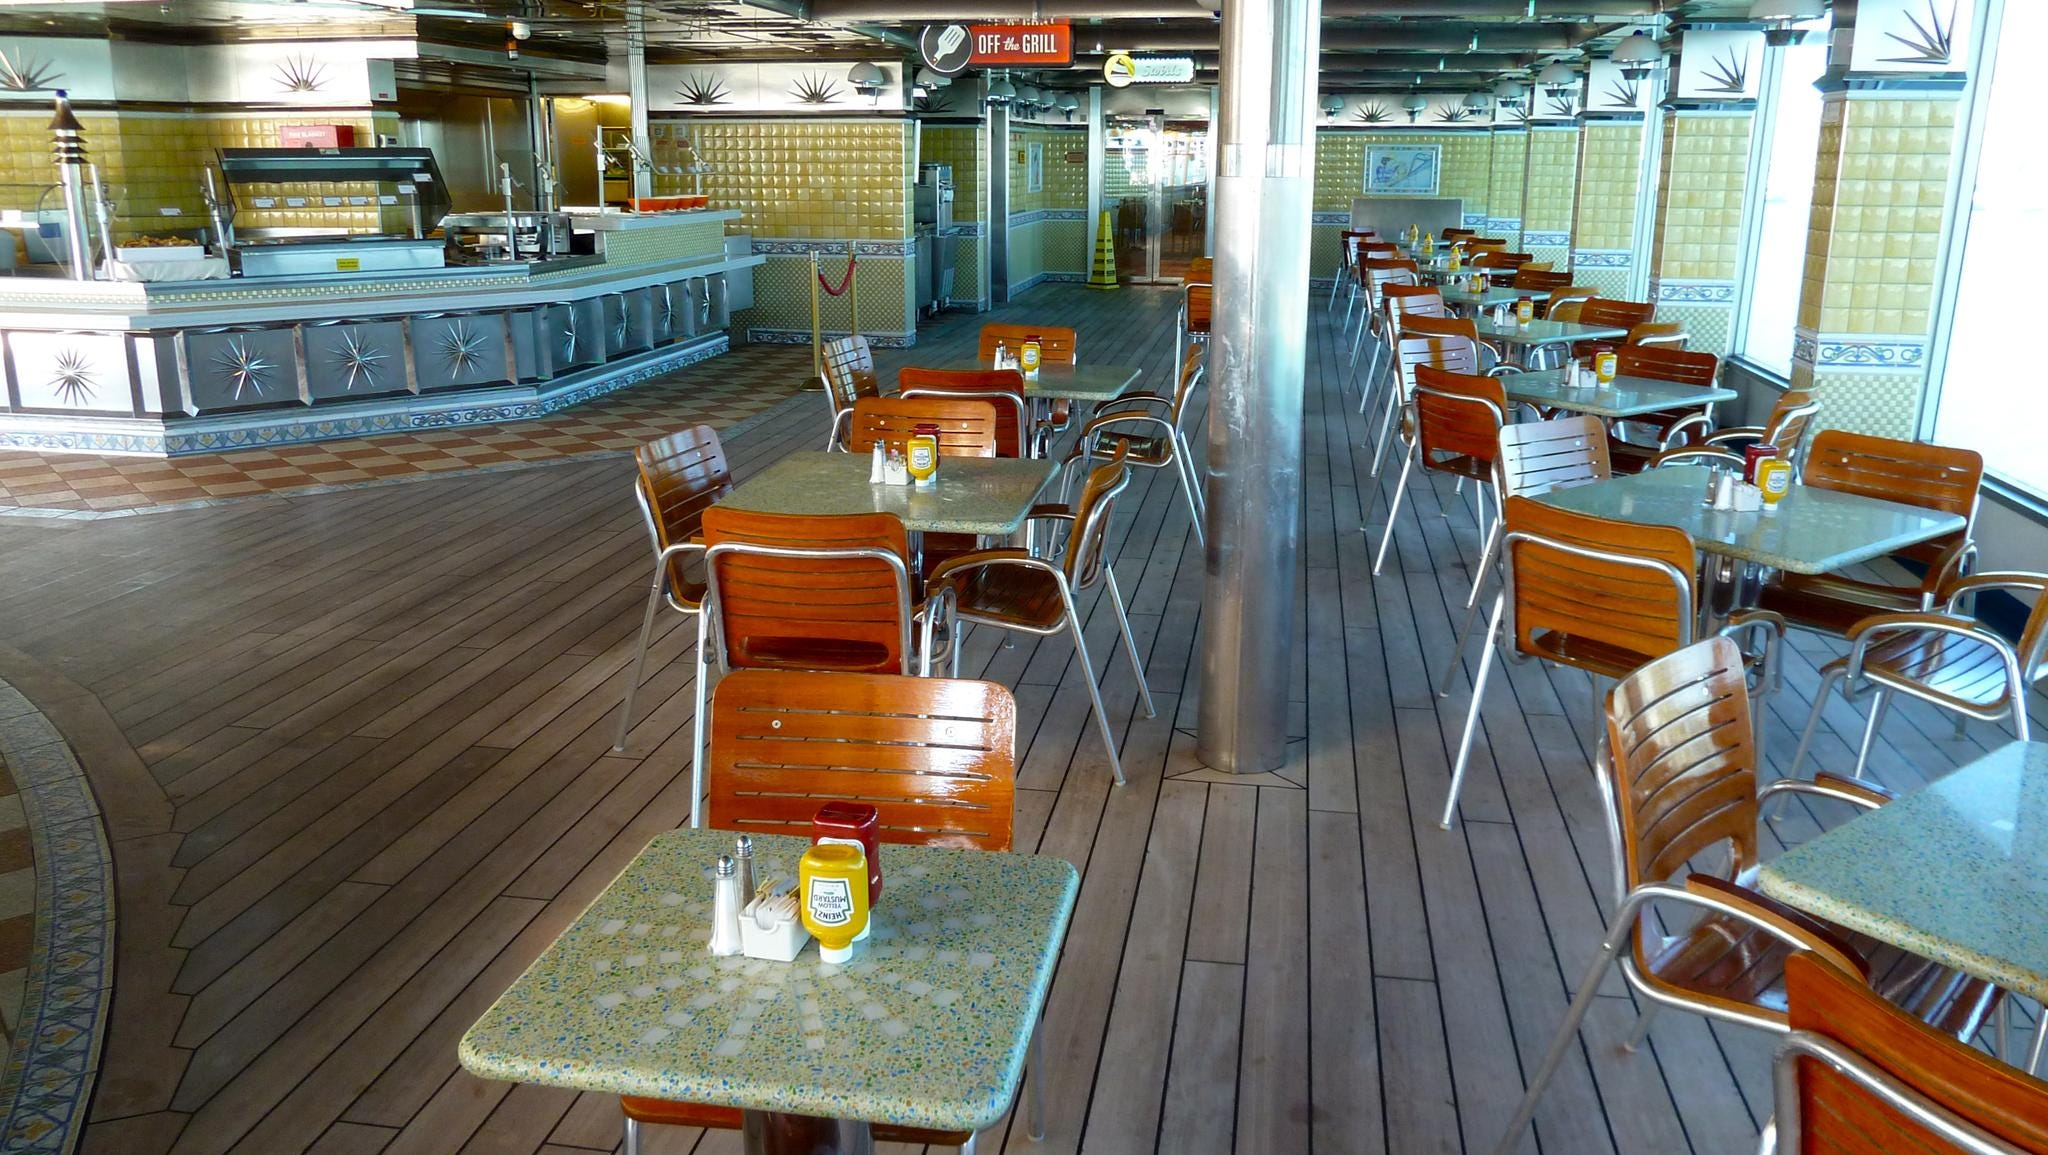 This is the forward/port portion of Rosie's on Deck 10, offering al fresco seating near the Argonaut Pool.